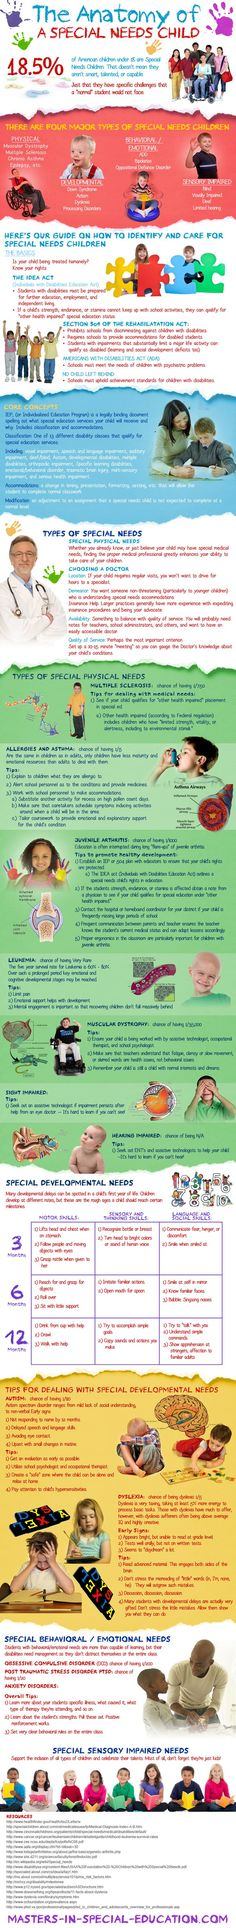 Anatomy of a Special Needs Child - Infographic with tips and information on raising kids with challenging needs.